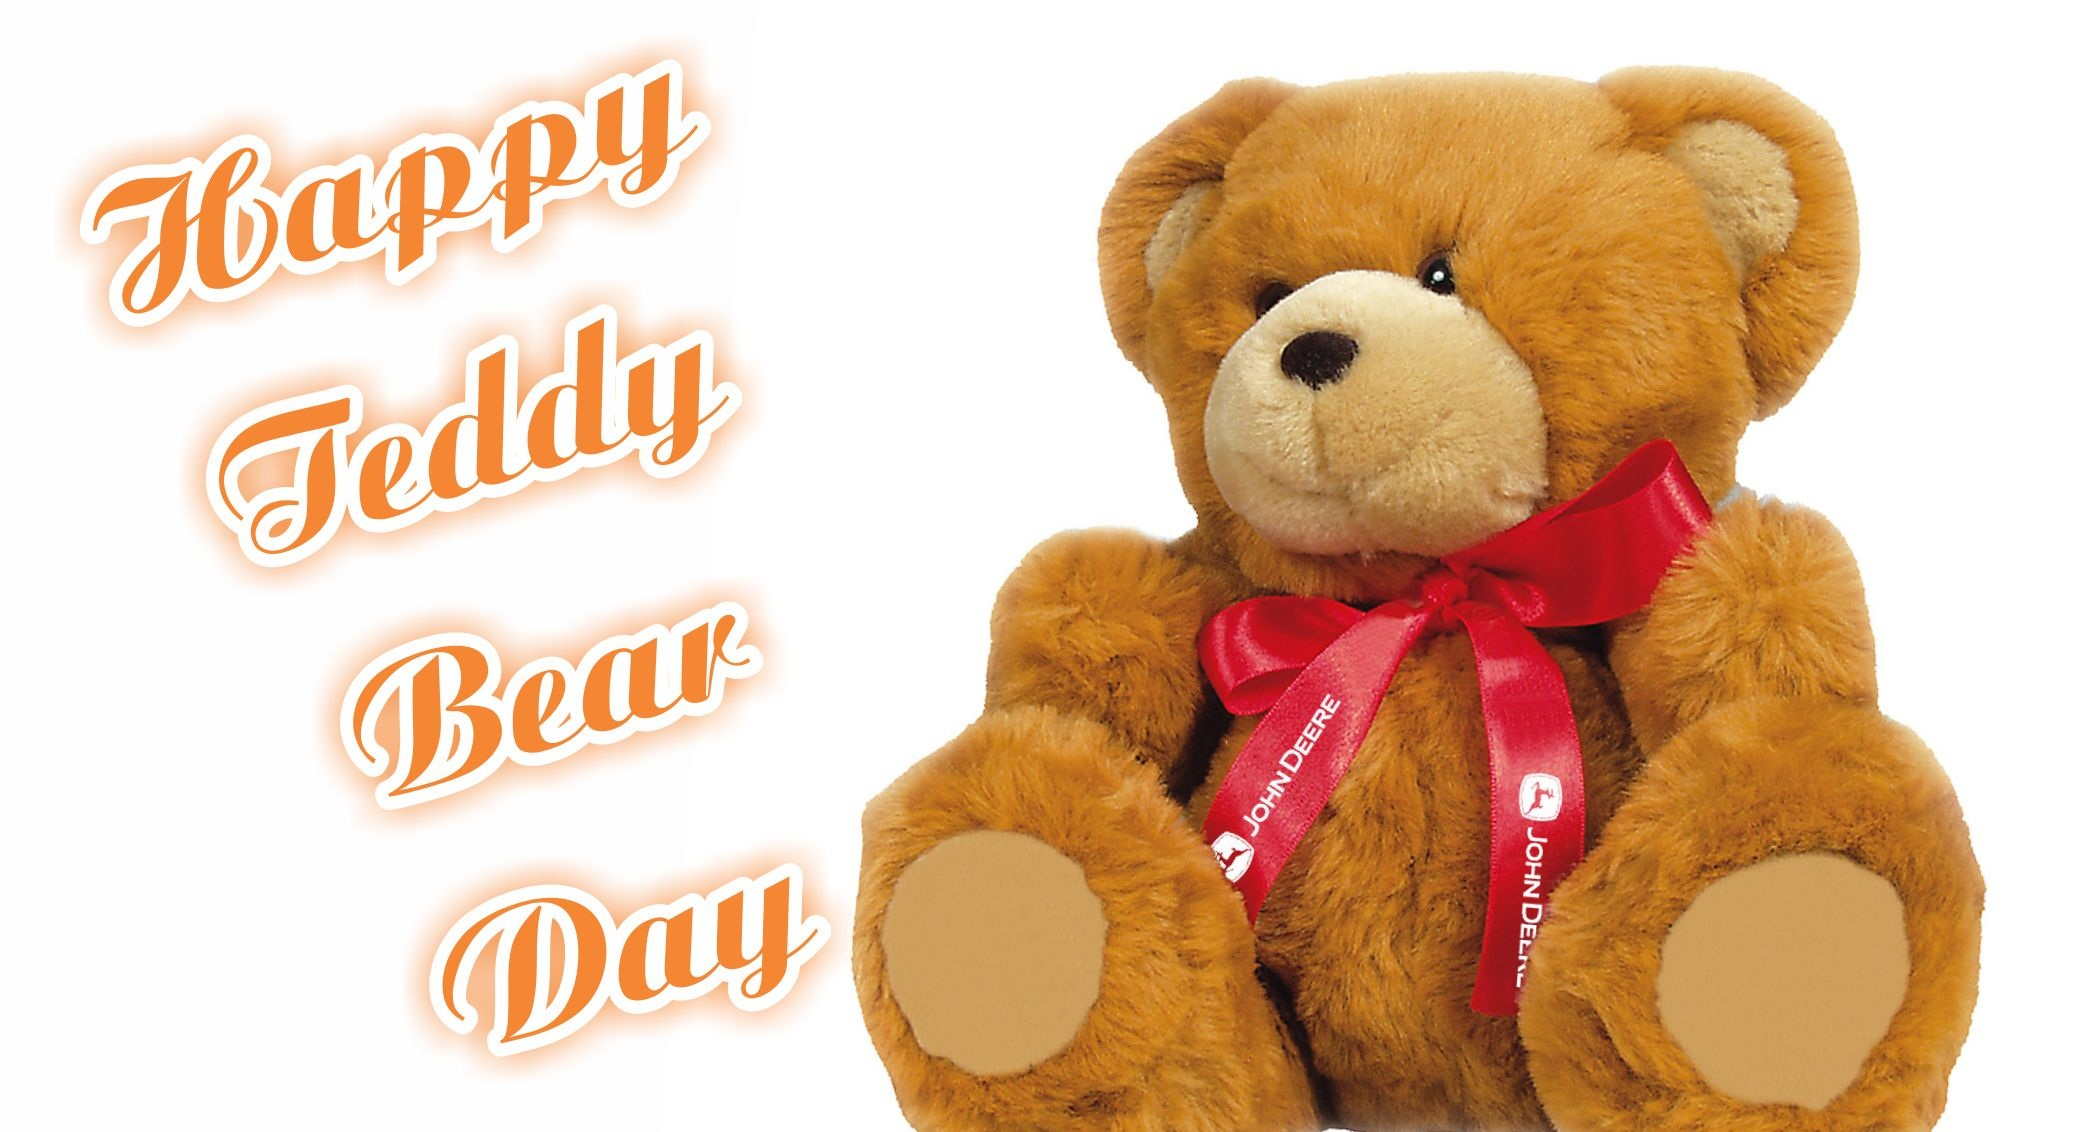 happy-Teddy-Bear-Day